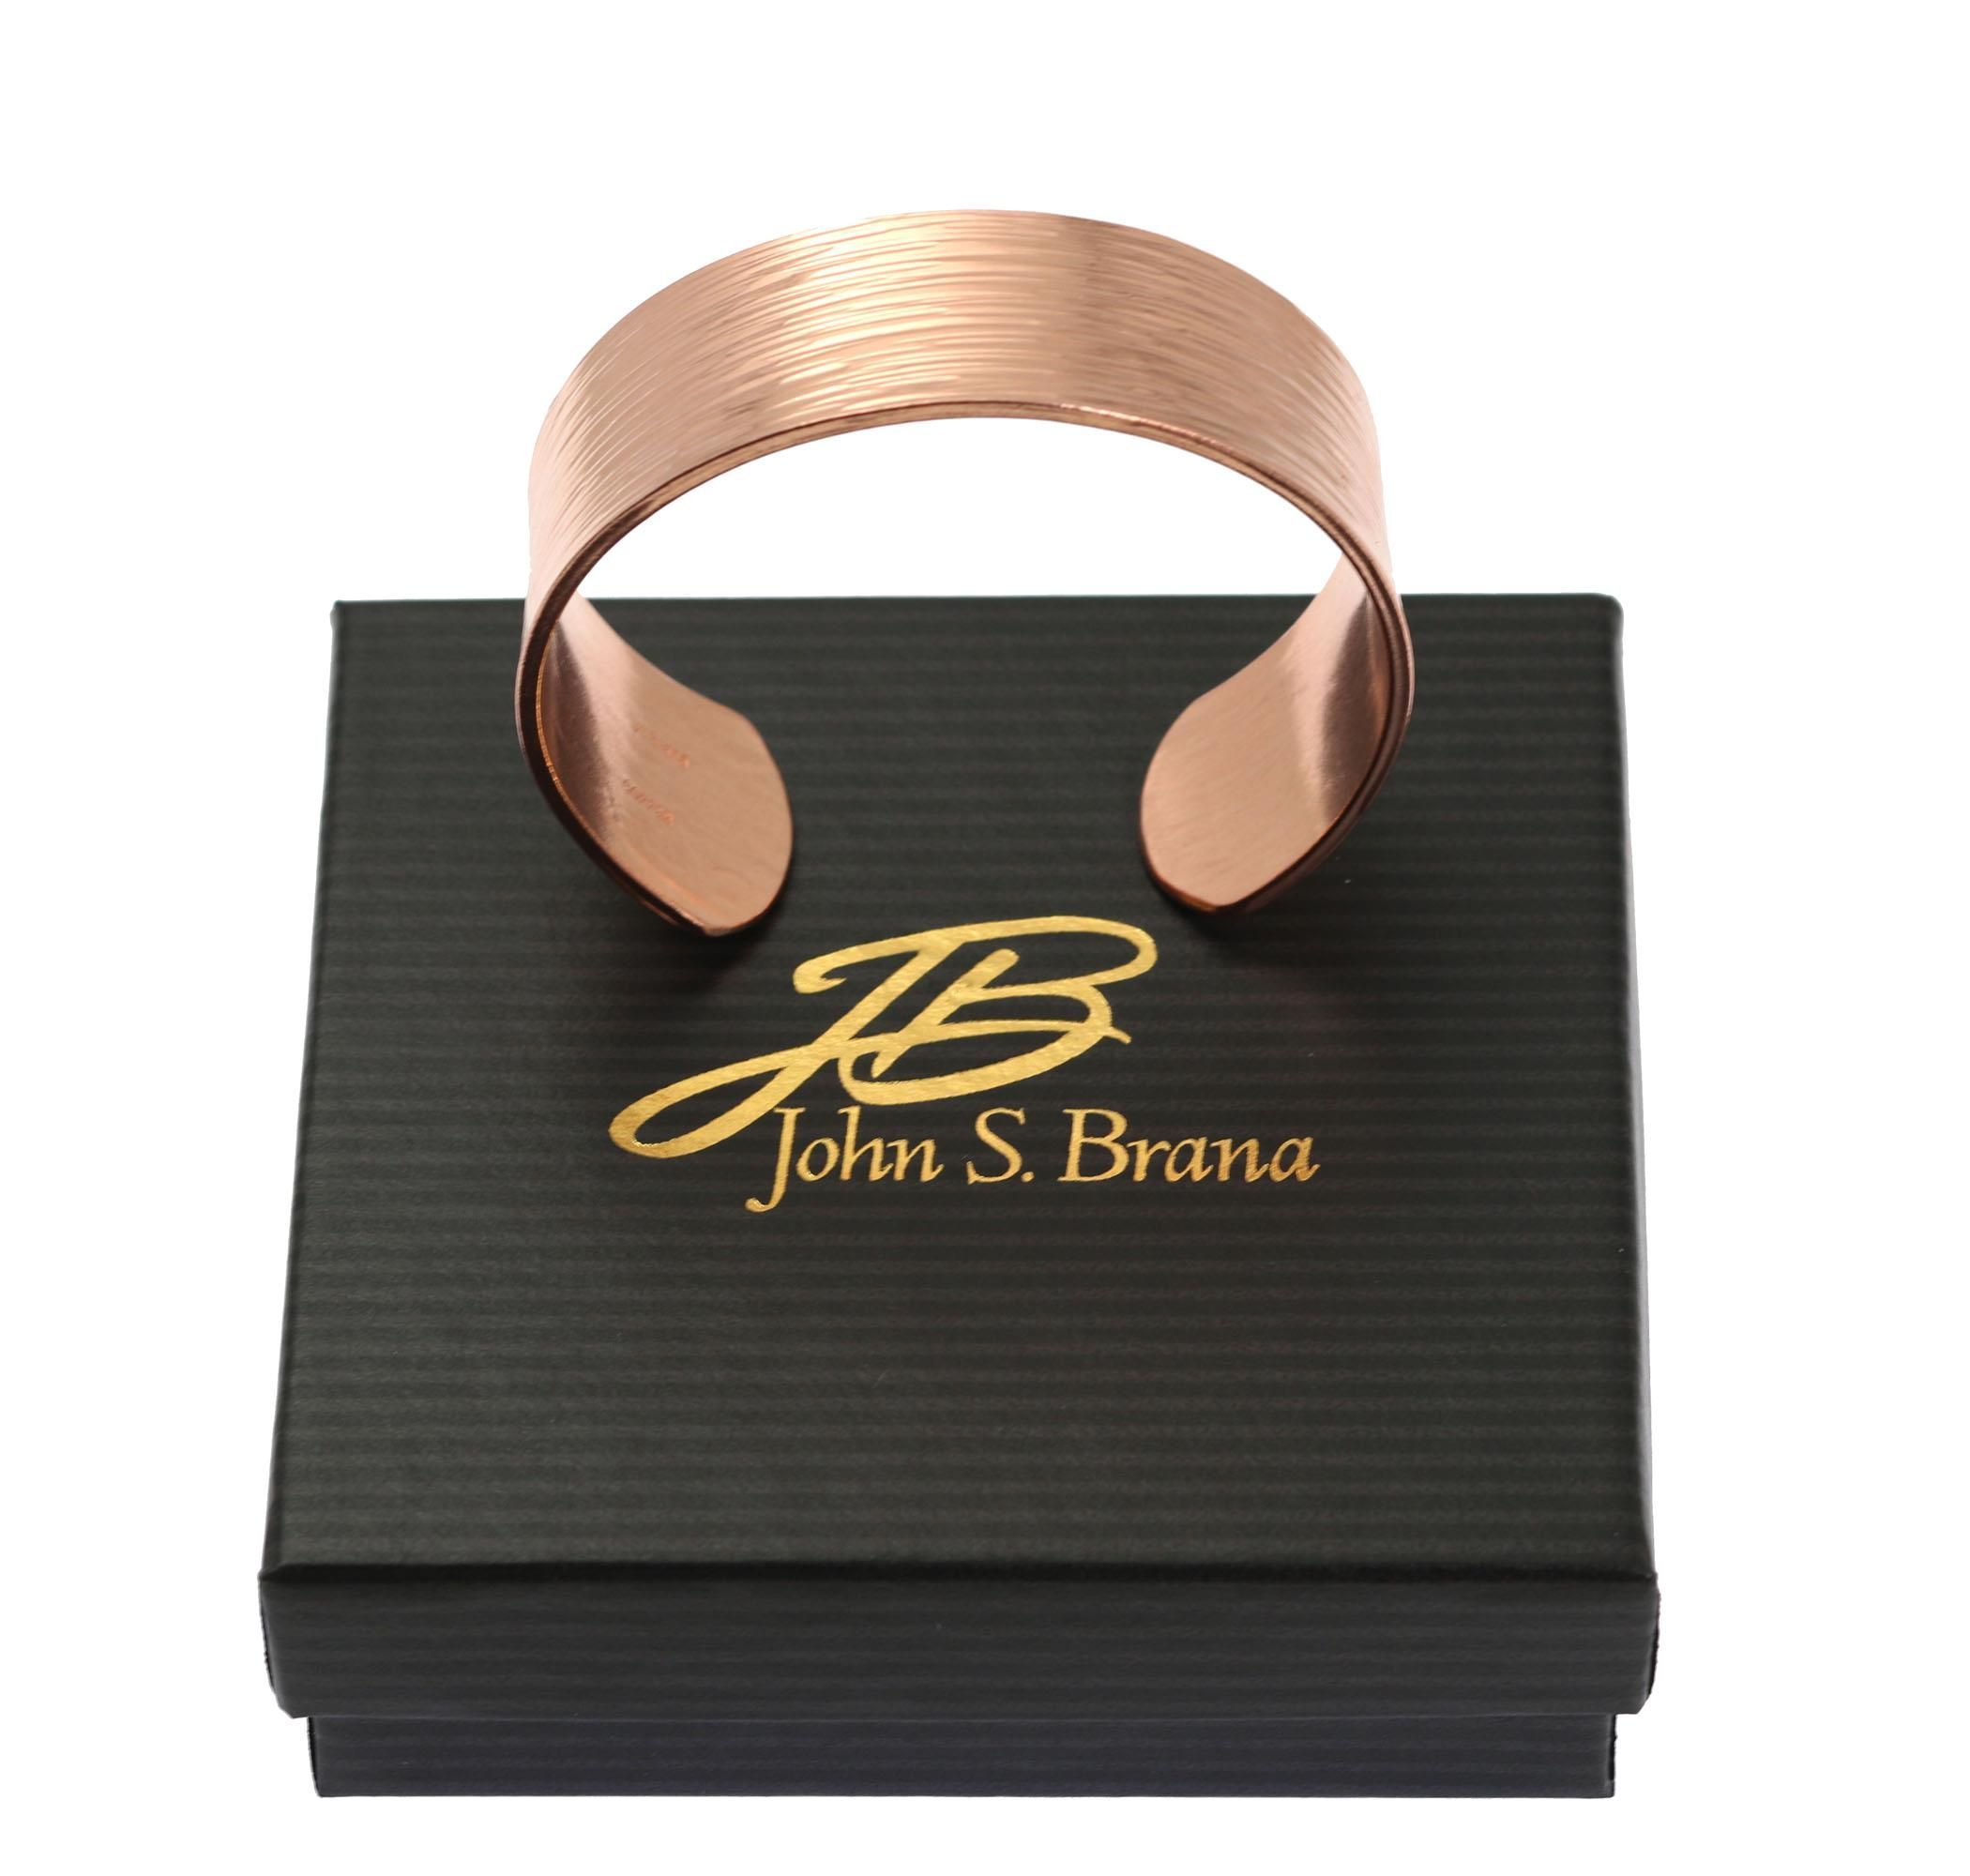 New Elegant Chased Copper Cuff Bracelet Offered by #AmazonHandmade #7thAnniversary http://www.amazon.com/dp/B01B9YY254